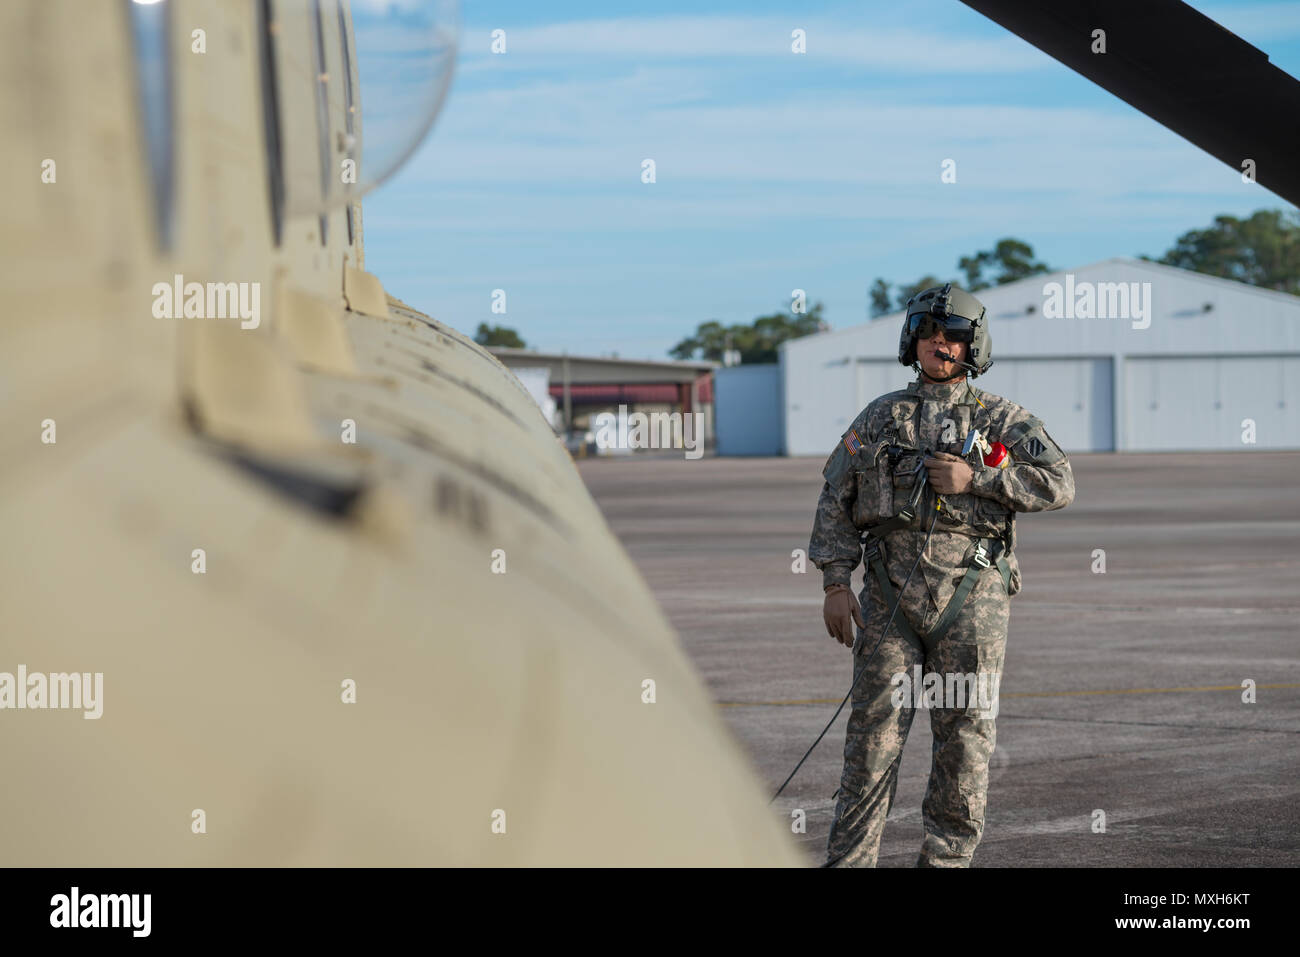 A U.S. Army Chinook crewmember assigned to the 3rd Combat Aviation Brigade prepares for a slingload training mission at Hunter Army Airfield, Nov. 6, 2016. The soldiers are transporting howitzers to a training area on Fort Stewart in support of the 3rd Division Artillery. (U.S. Army photo by Lt. Col. Brian J. Fickel) Stock Photo